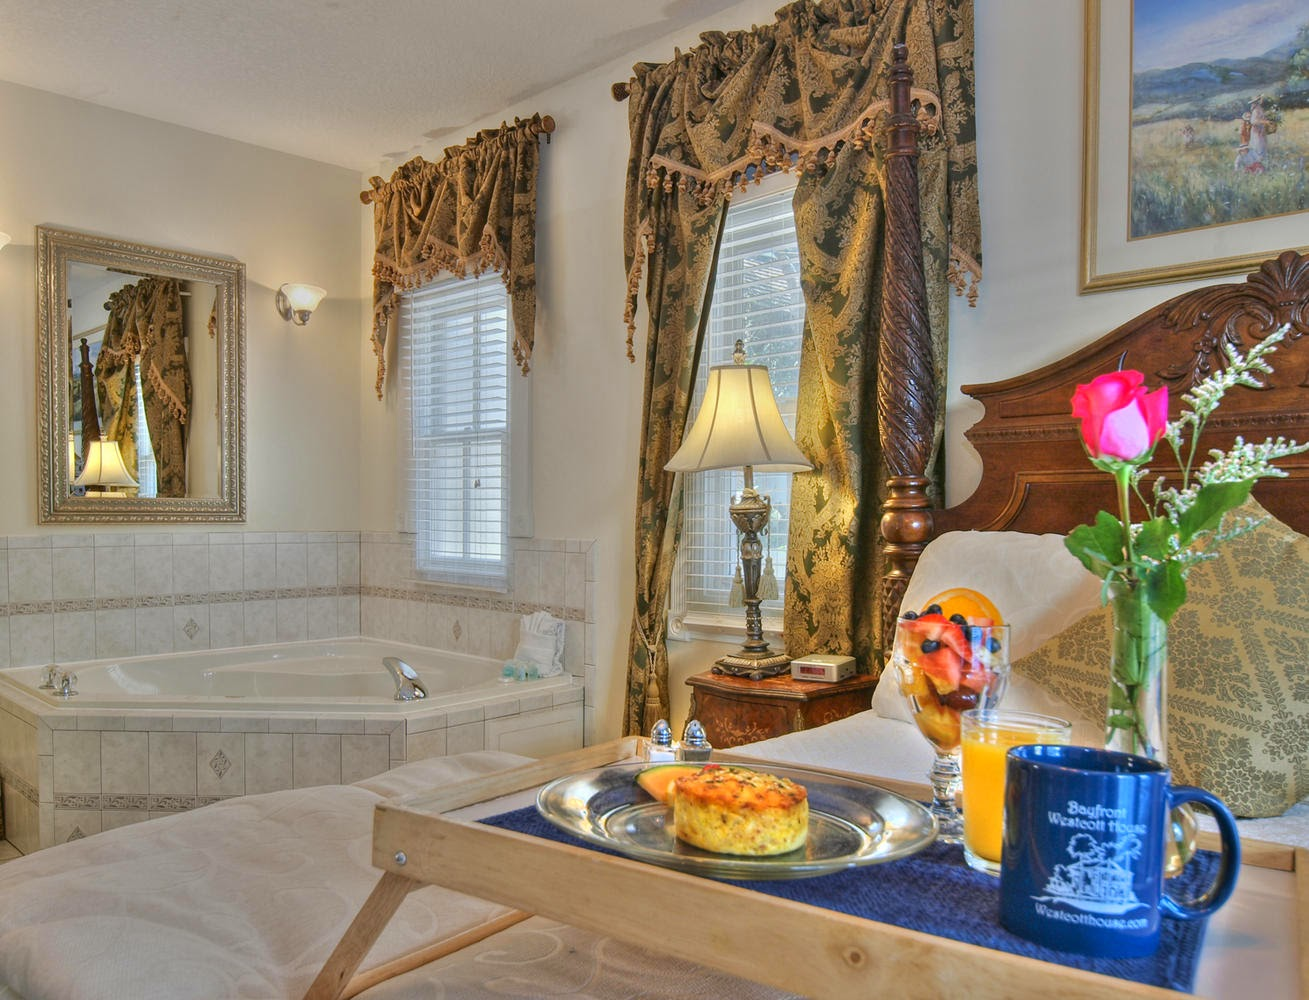 st augustine romantic bed and breakfast - newyorkfashion